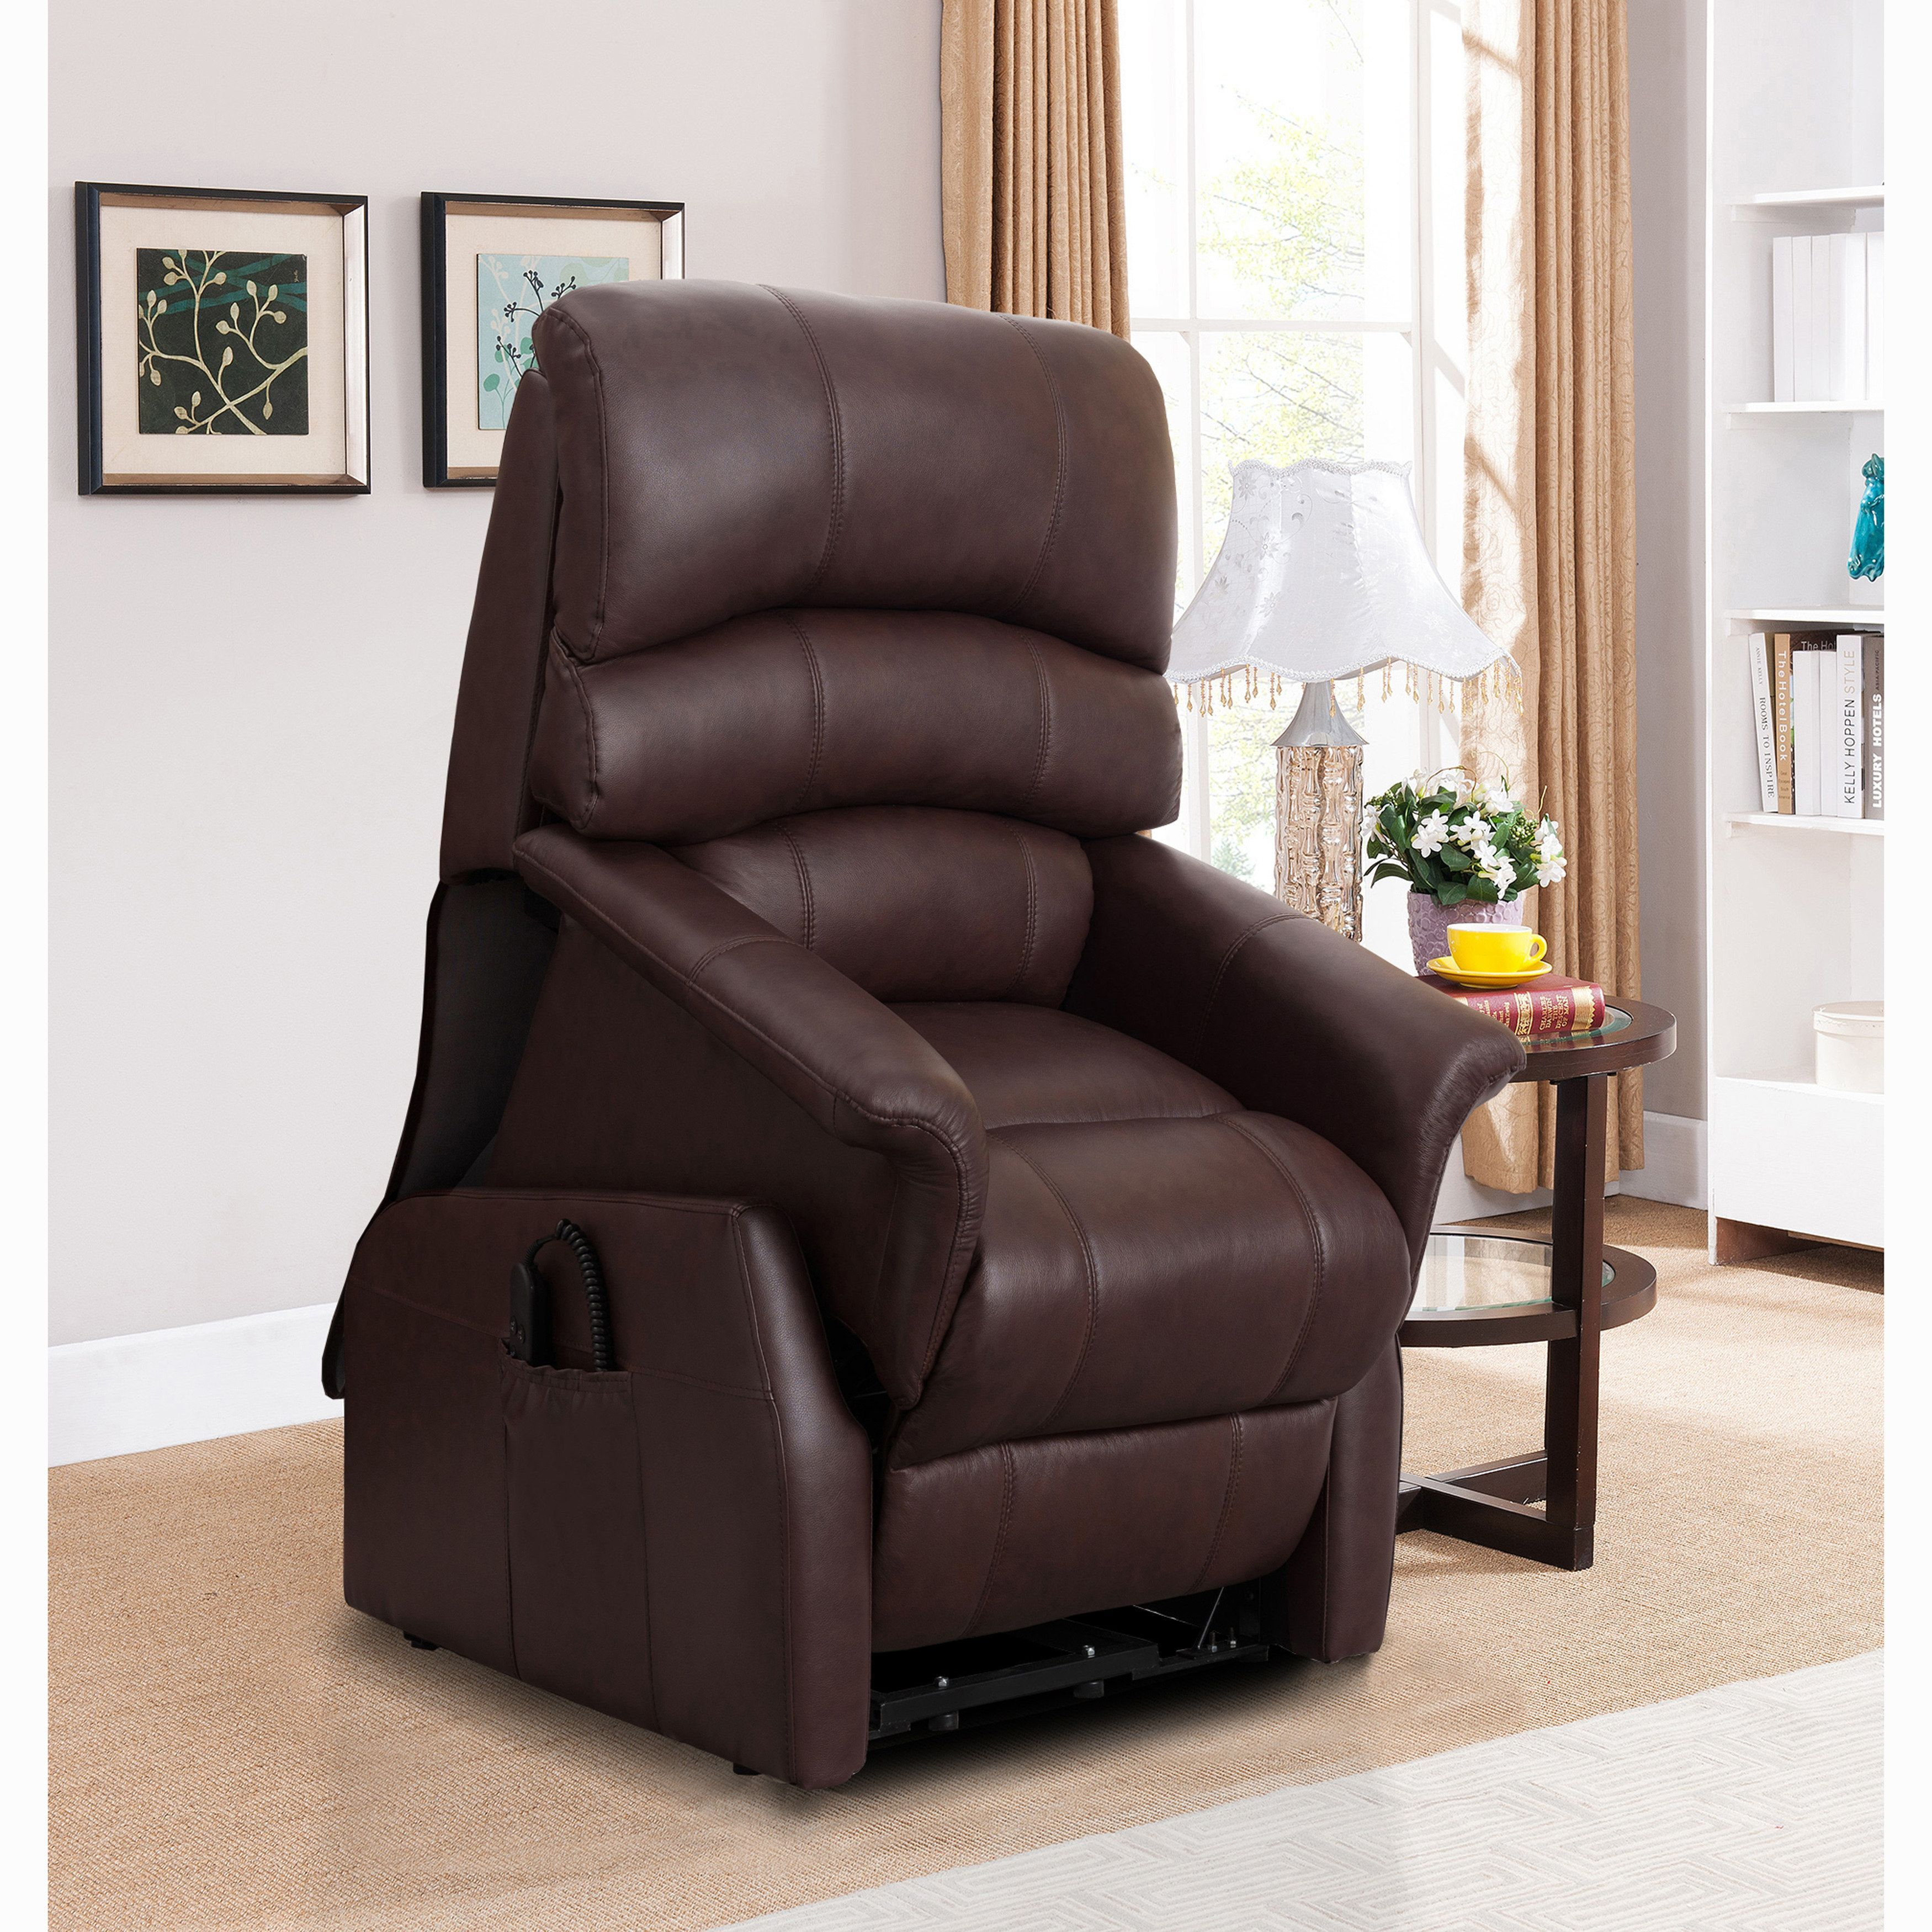 chairs awesome spectacular perfect chair inspiration remodel home recliner flat designing in with lay